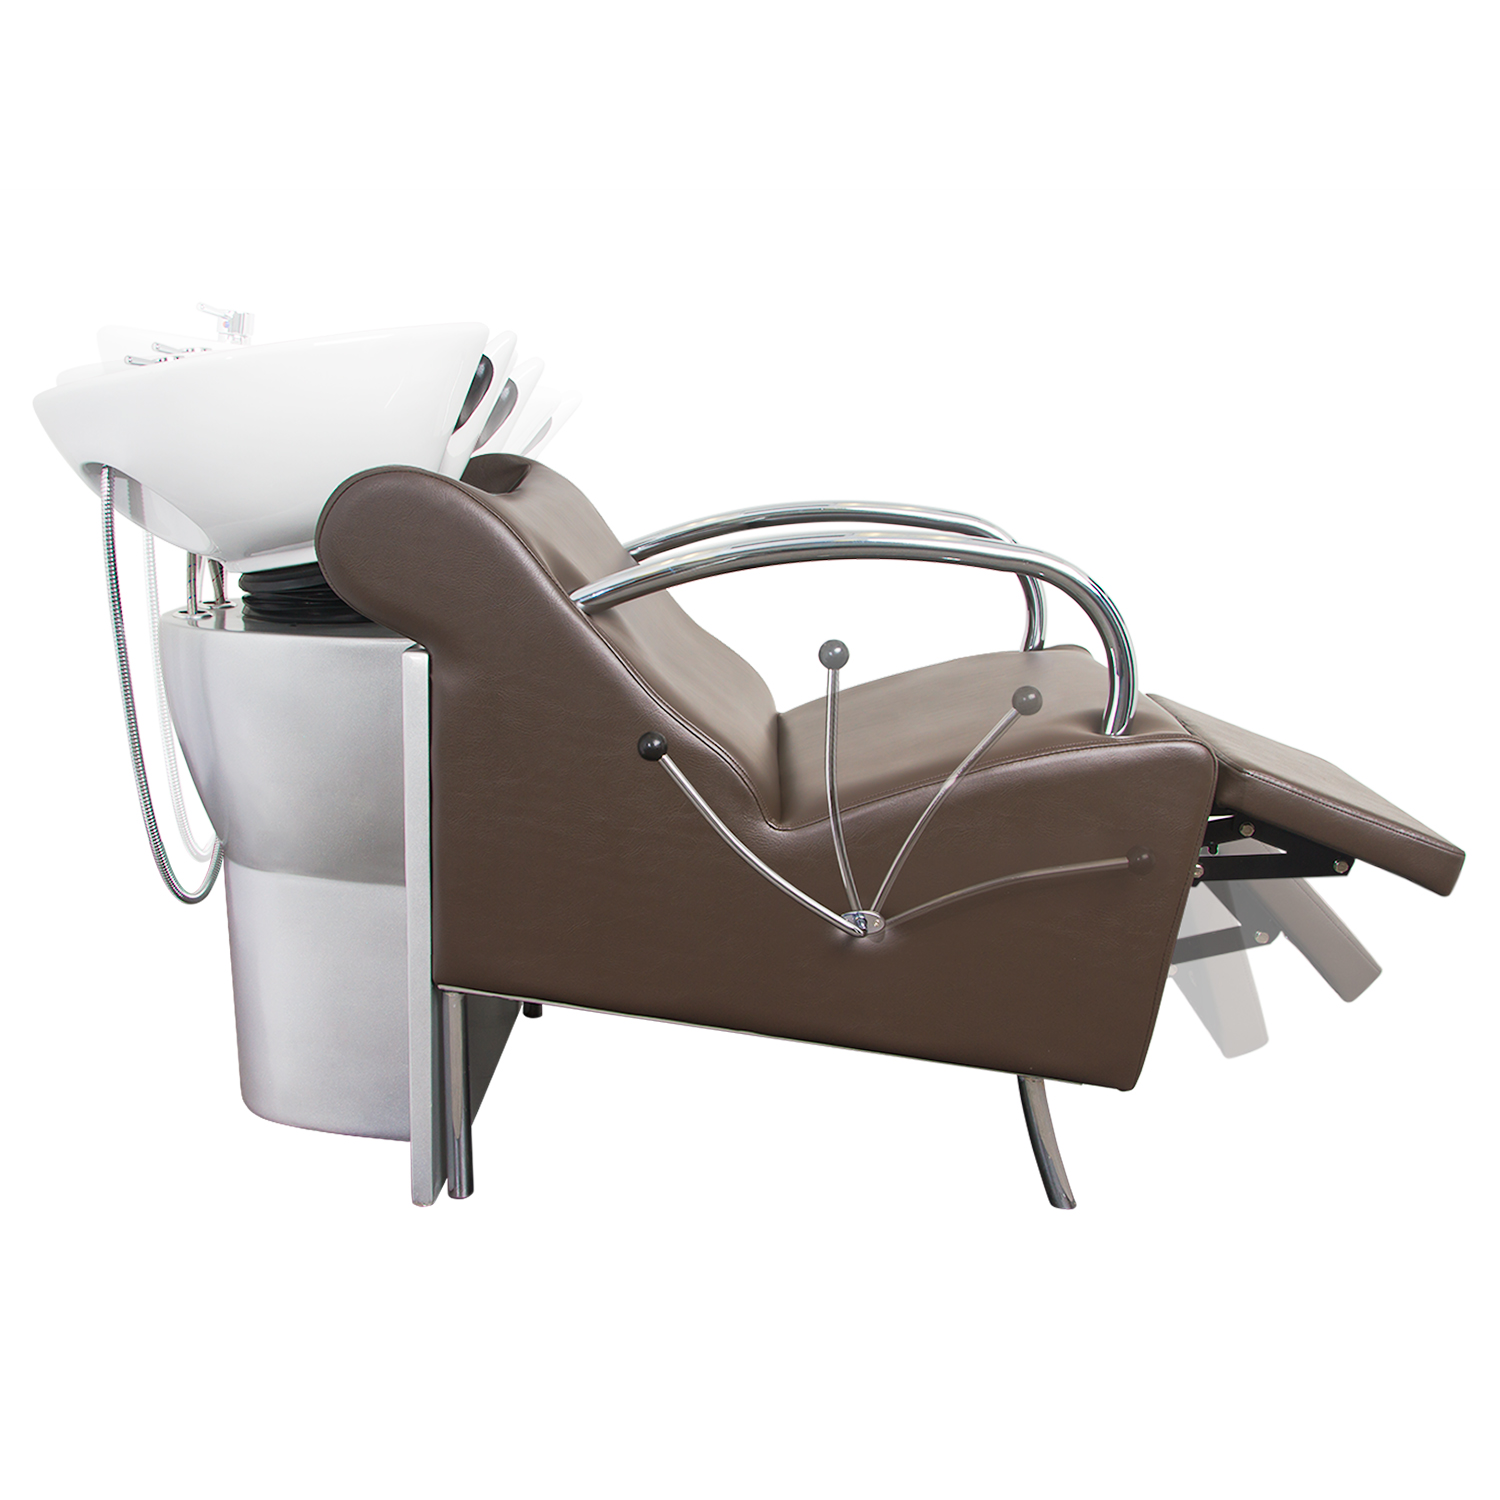 Brown Stockholm Shampoo Chair with White Bowl alternative product image 1